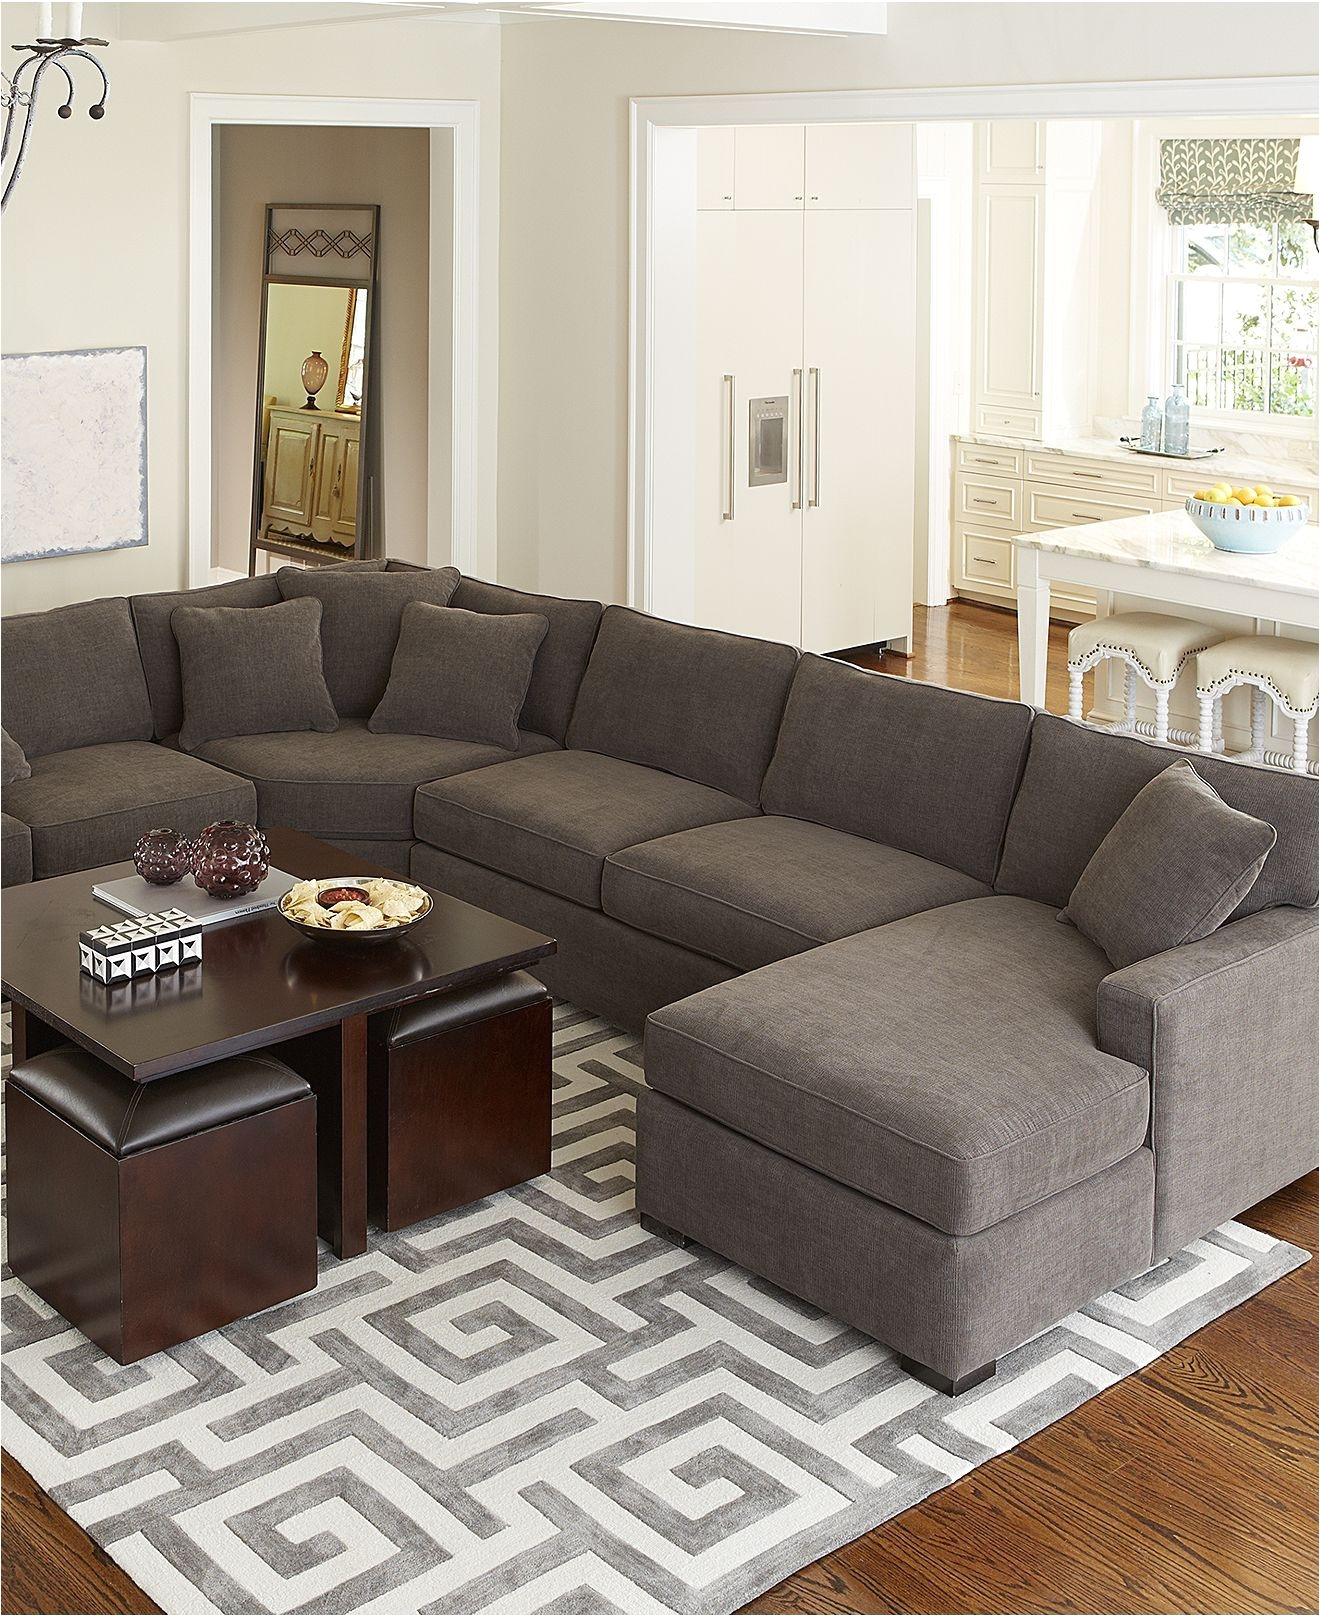 macy s sectional sofa flexible arm tray red leather chair macys awesome radley fabric collection